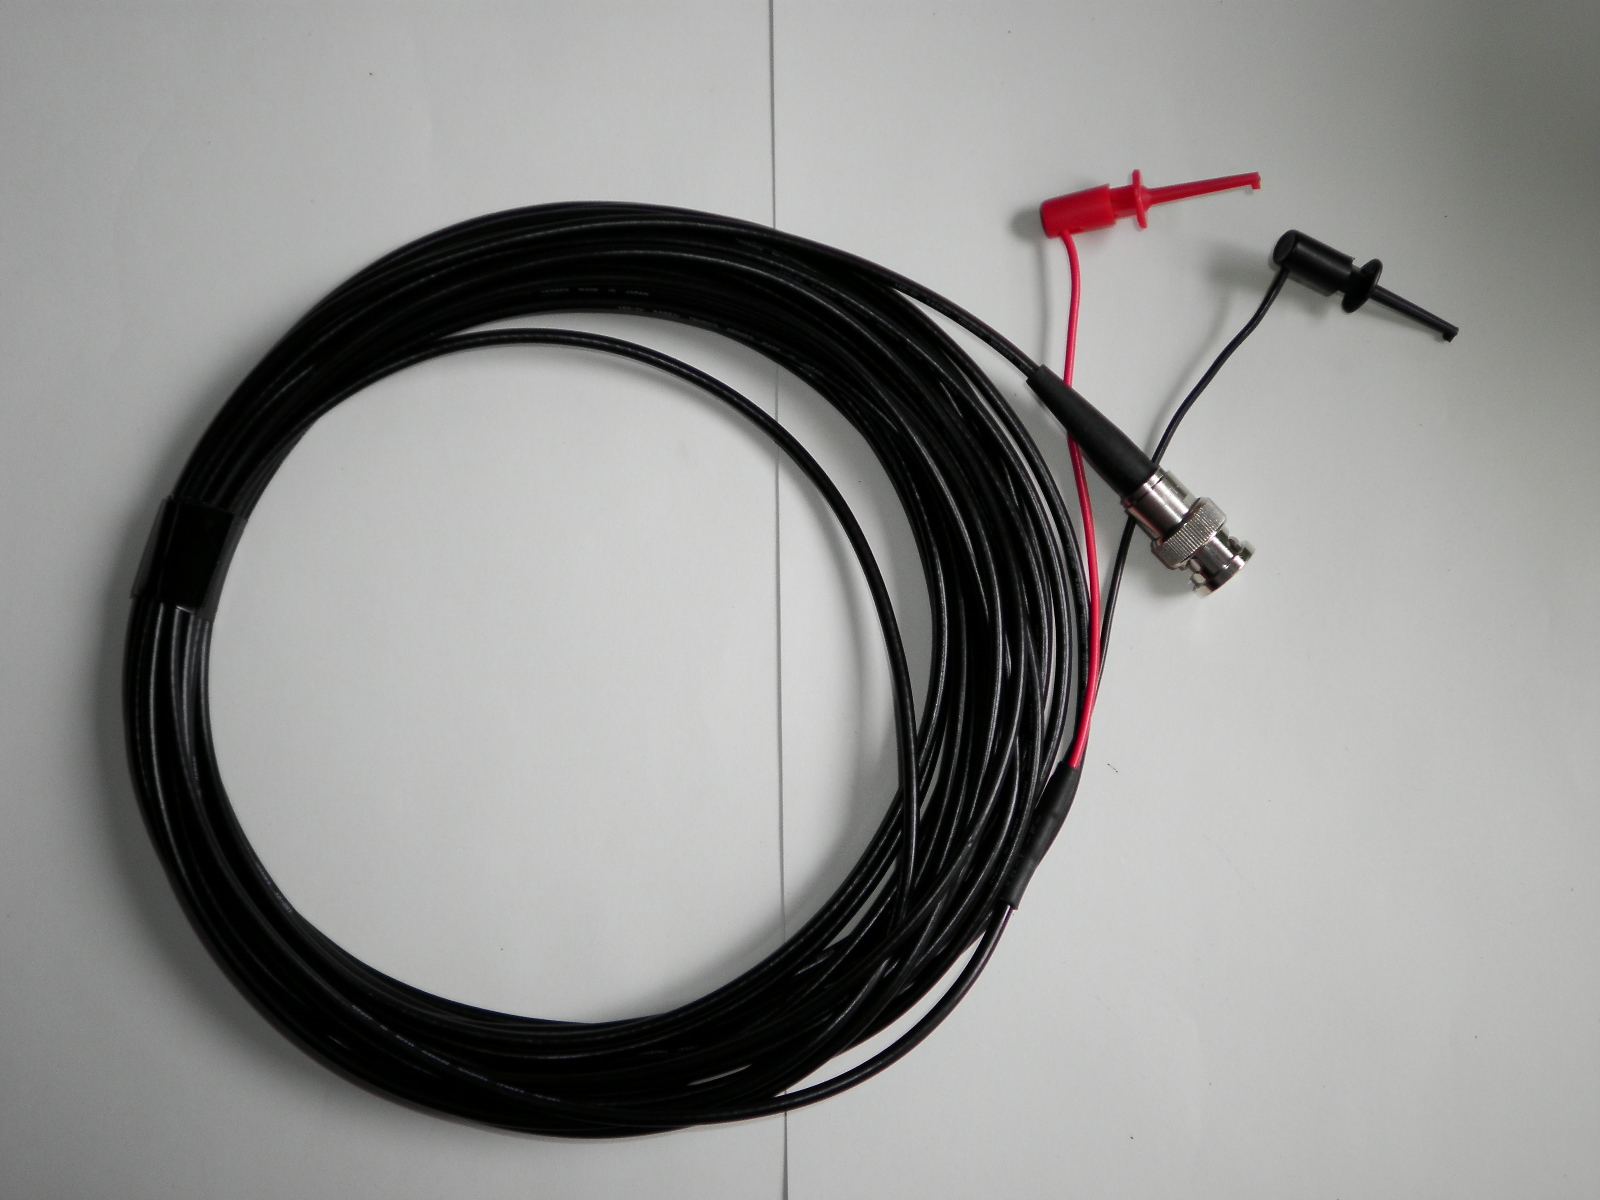 http://www.cable-harness-ex.com/case/SANY0020.JPG